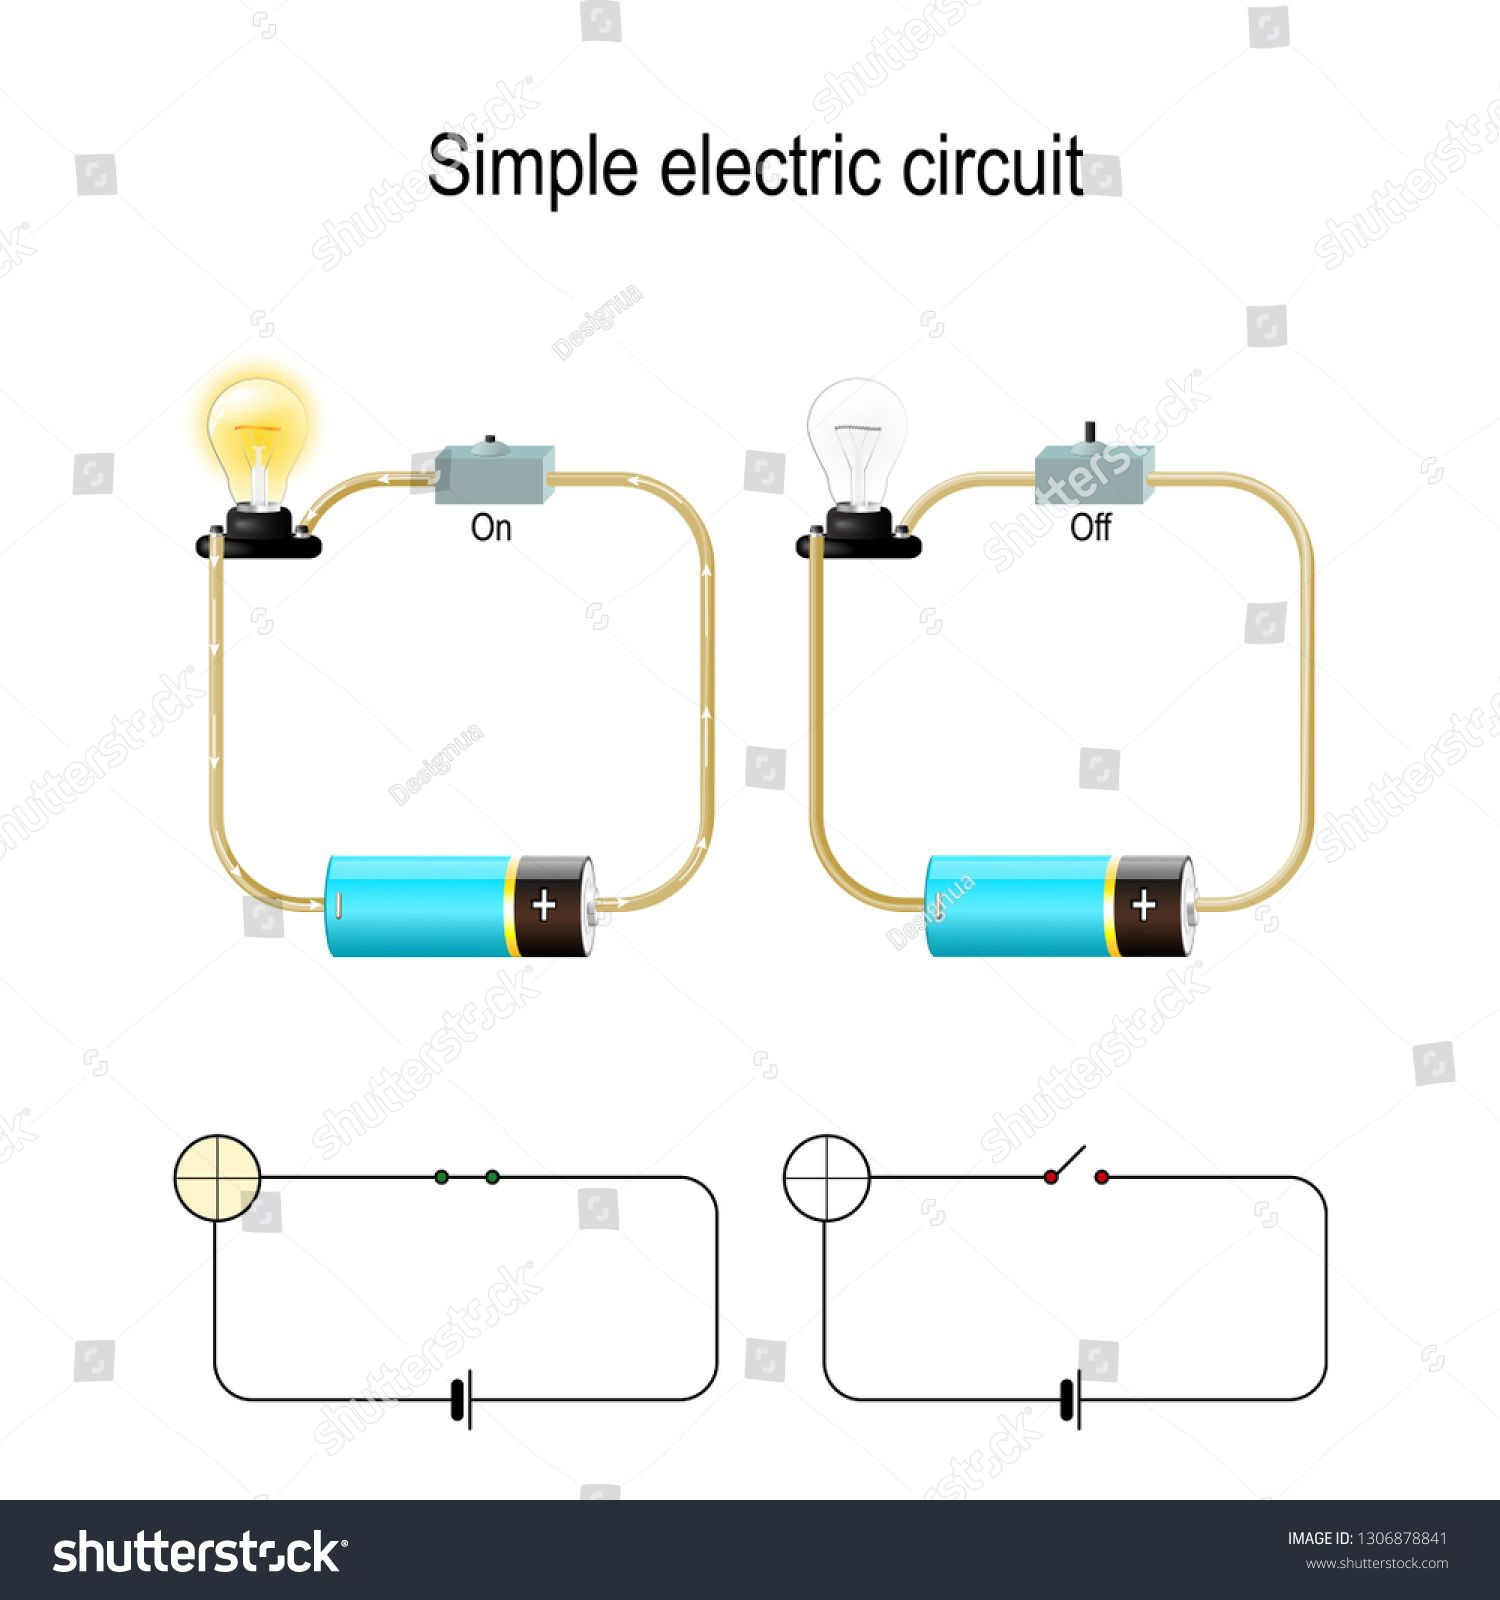 Wiring Diagram For Boat Trailer Light Emergency Lighting Electronic Schematics Circuit Diagram